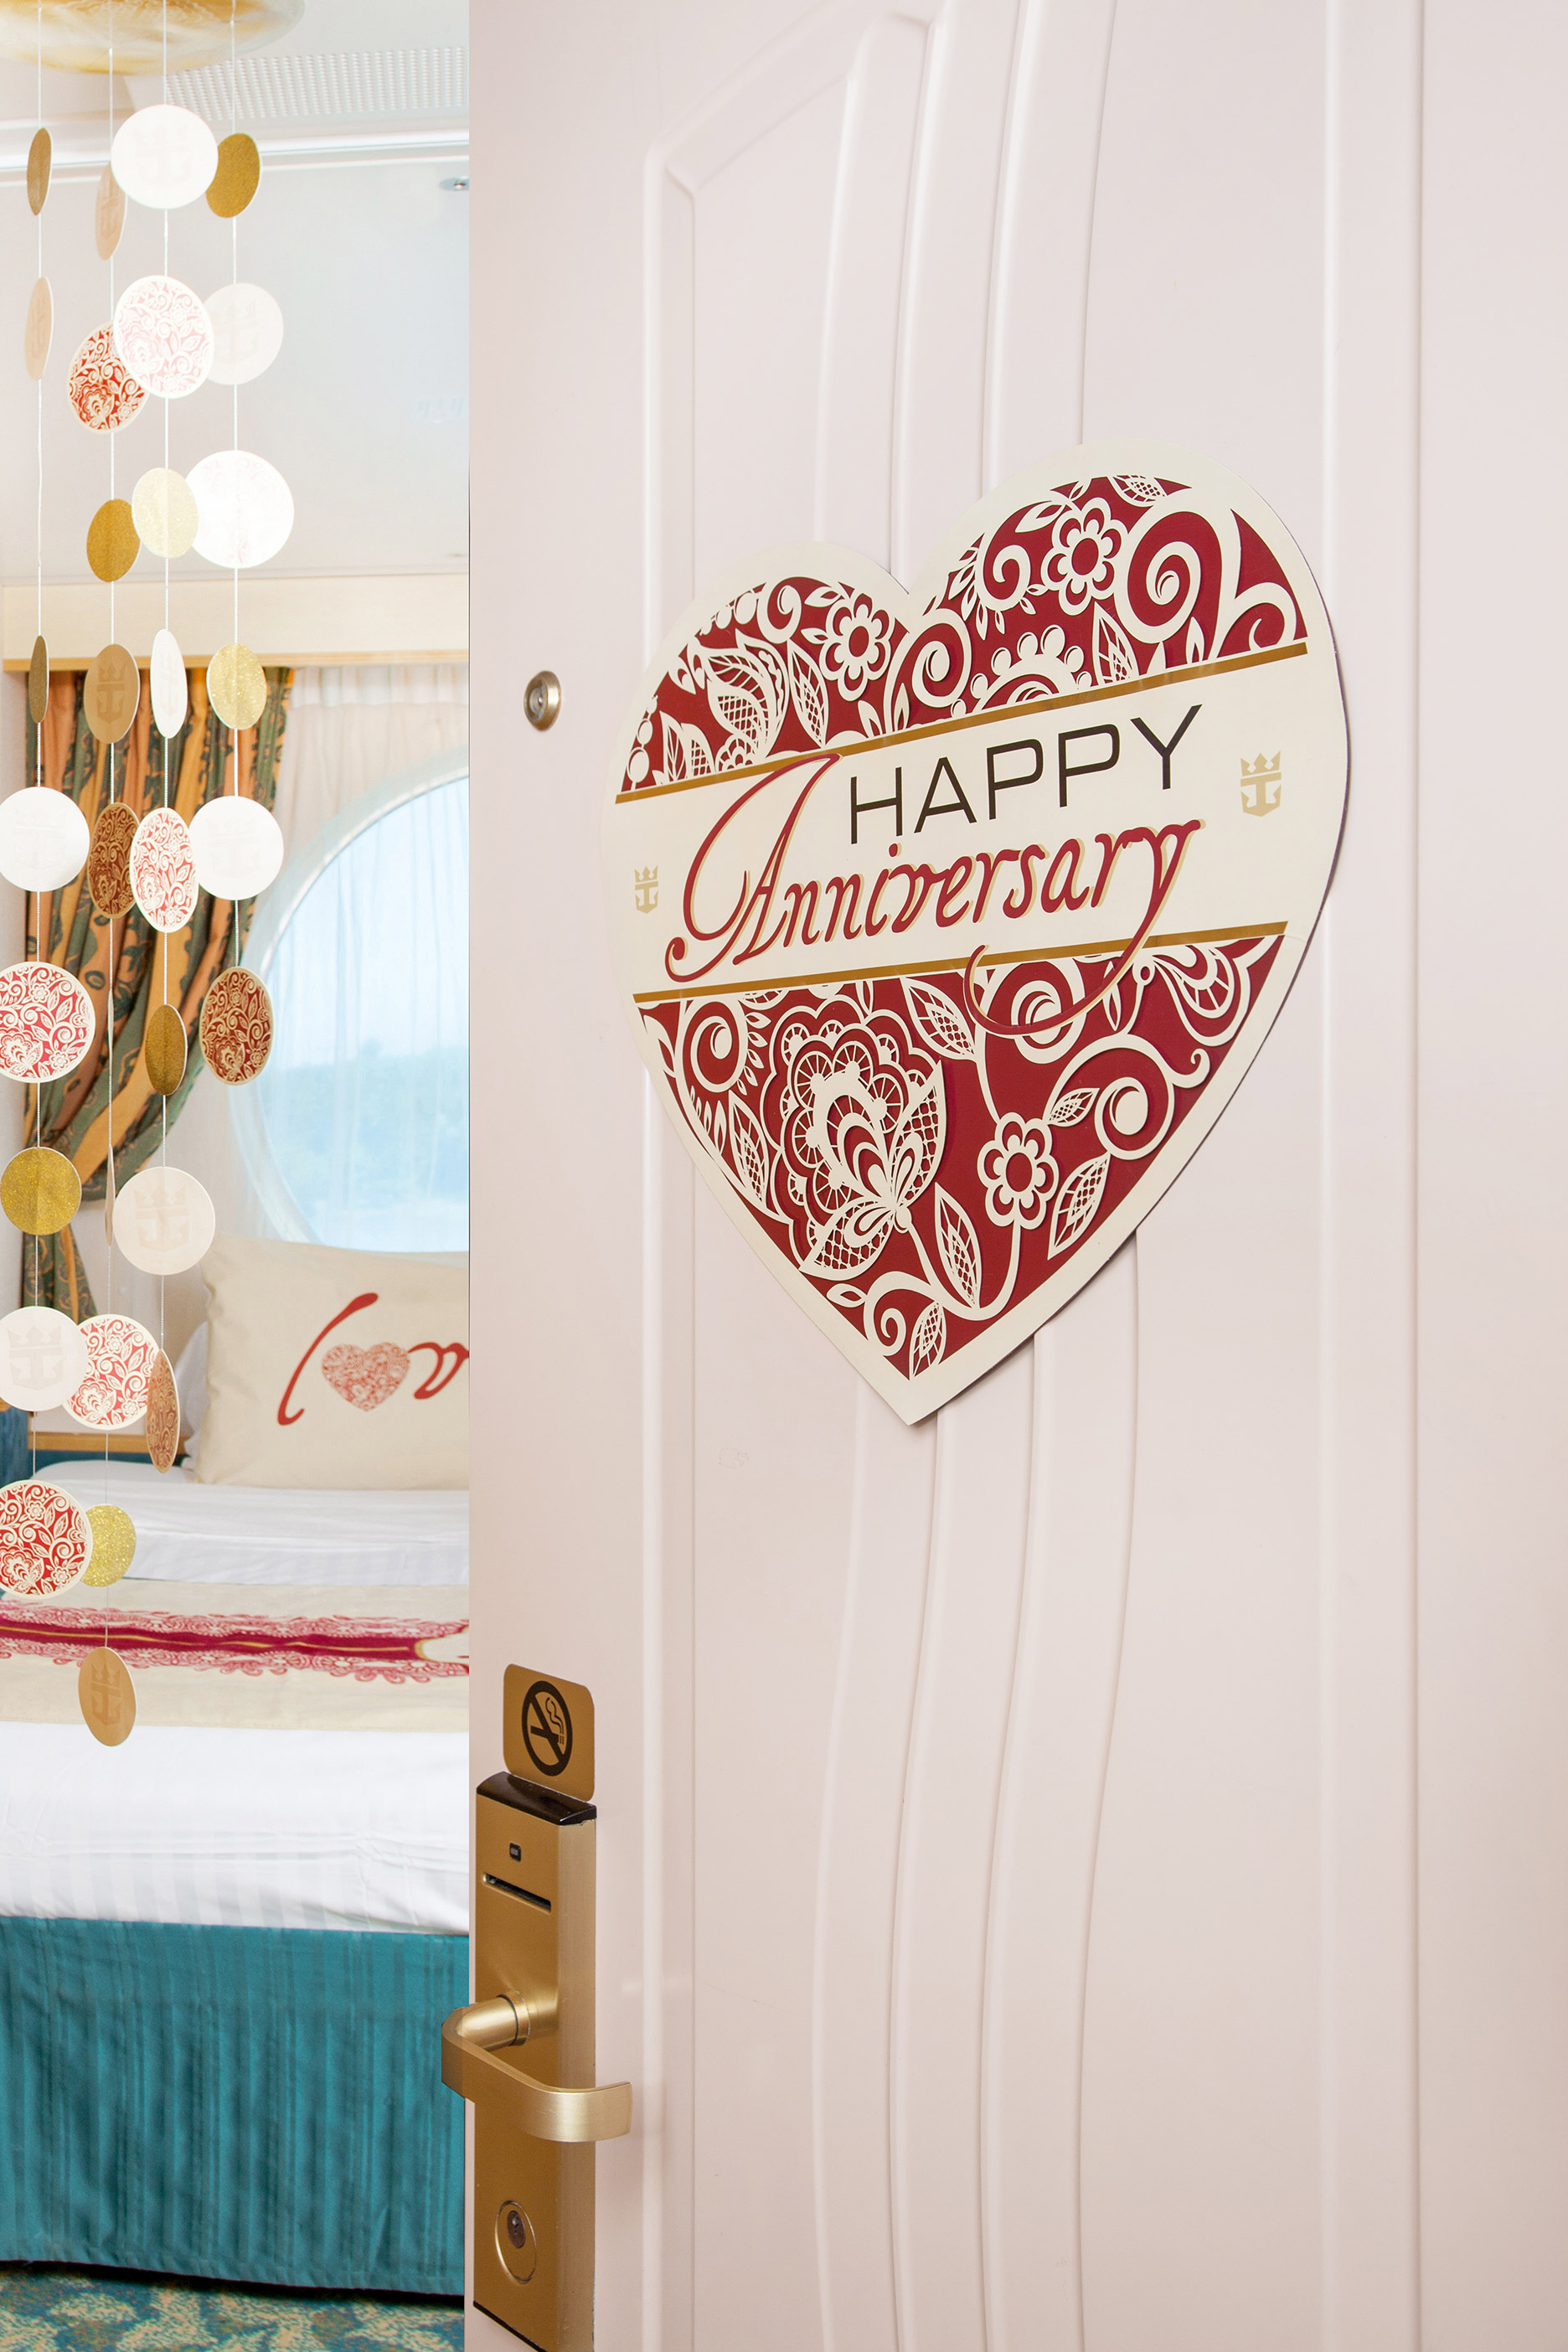 Happy anniversary room d cor deluxe package for Room decor gifts